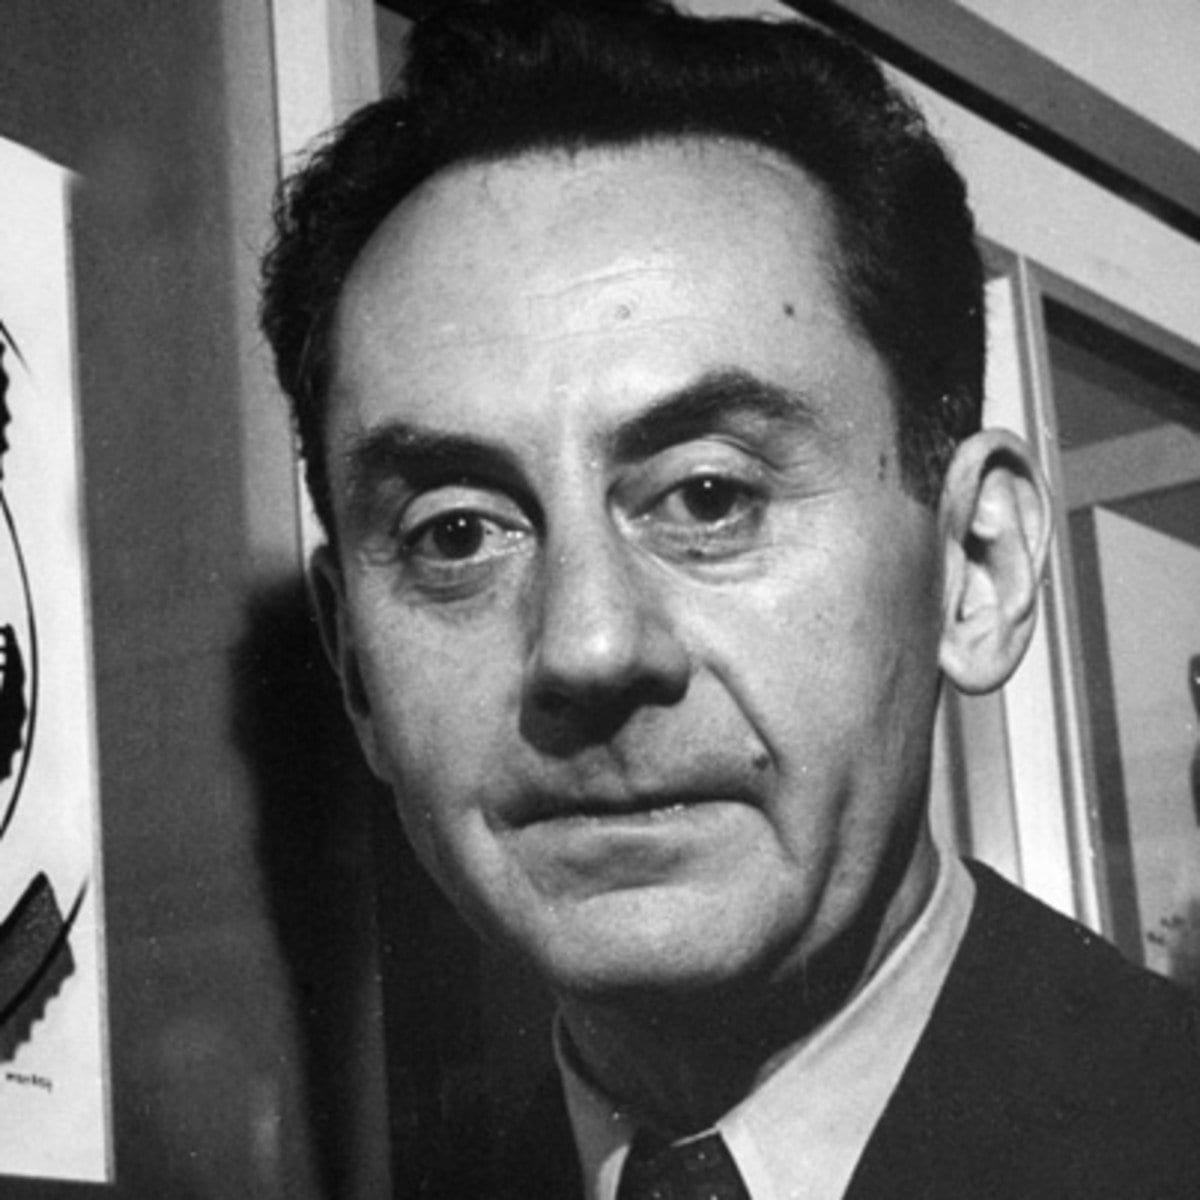 Man Ray was a significant artist in the Surrealist movement